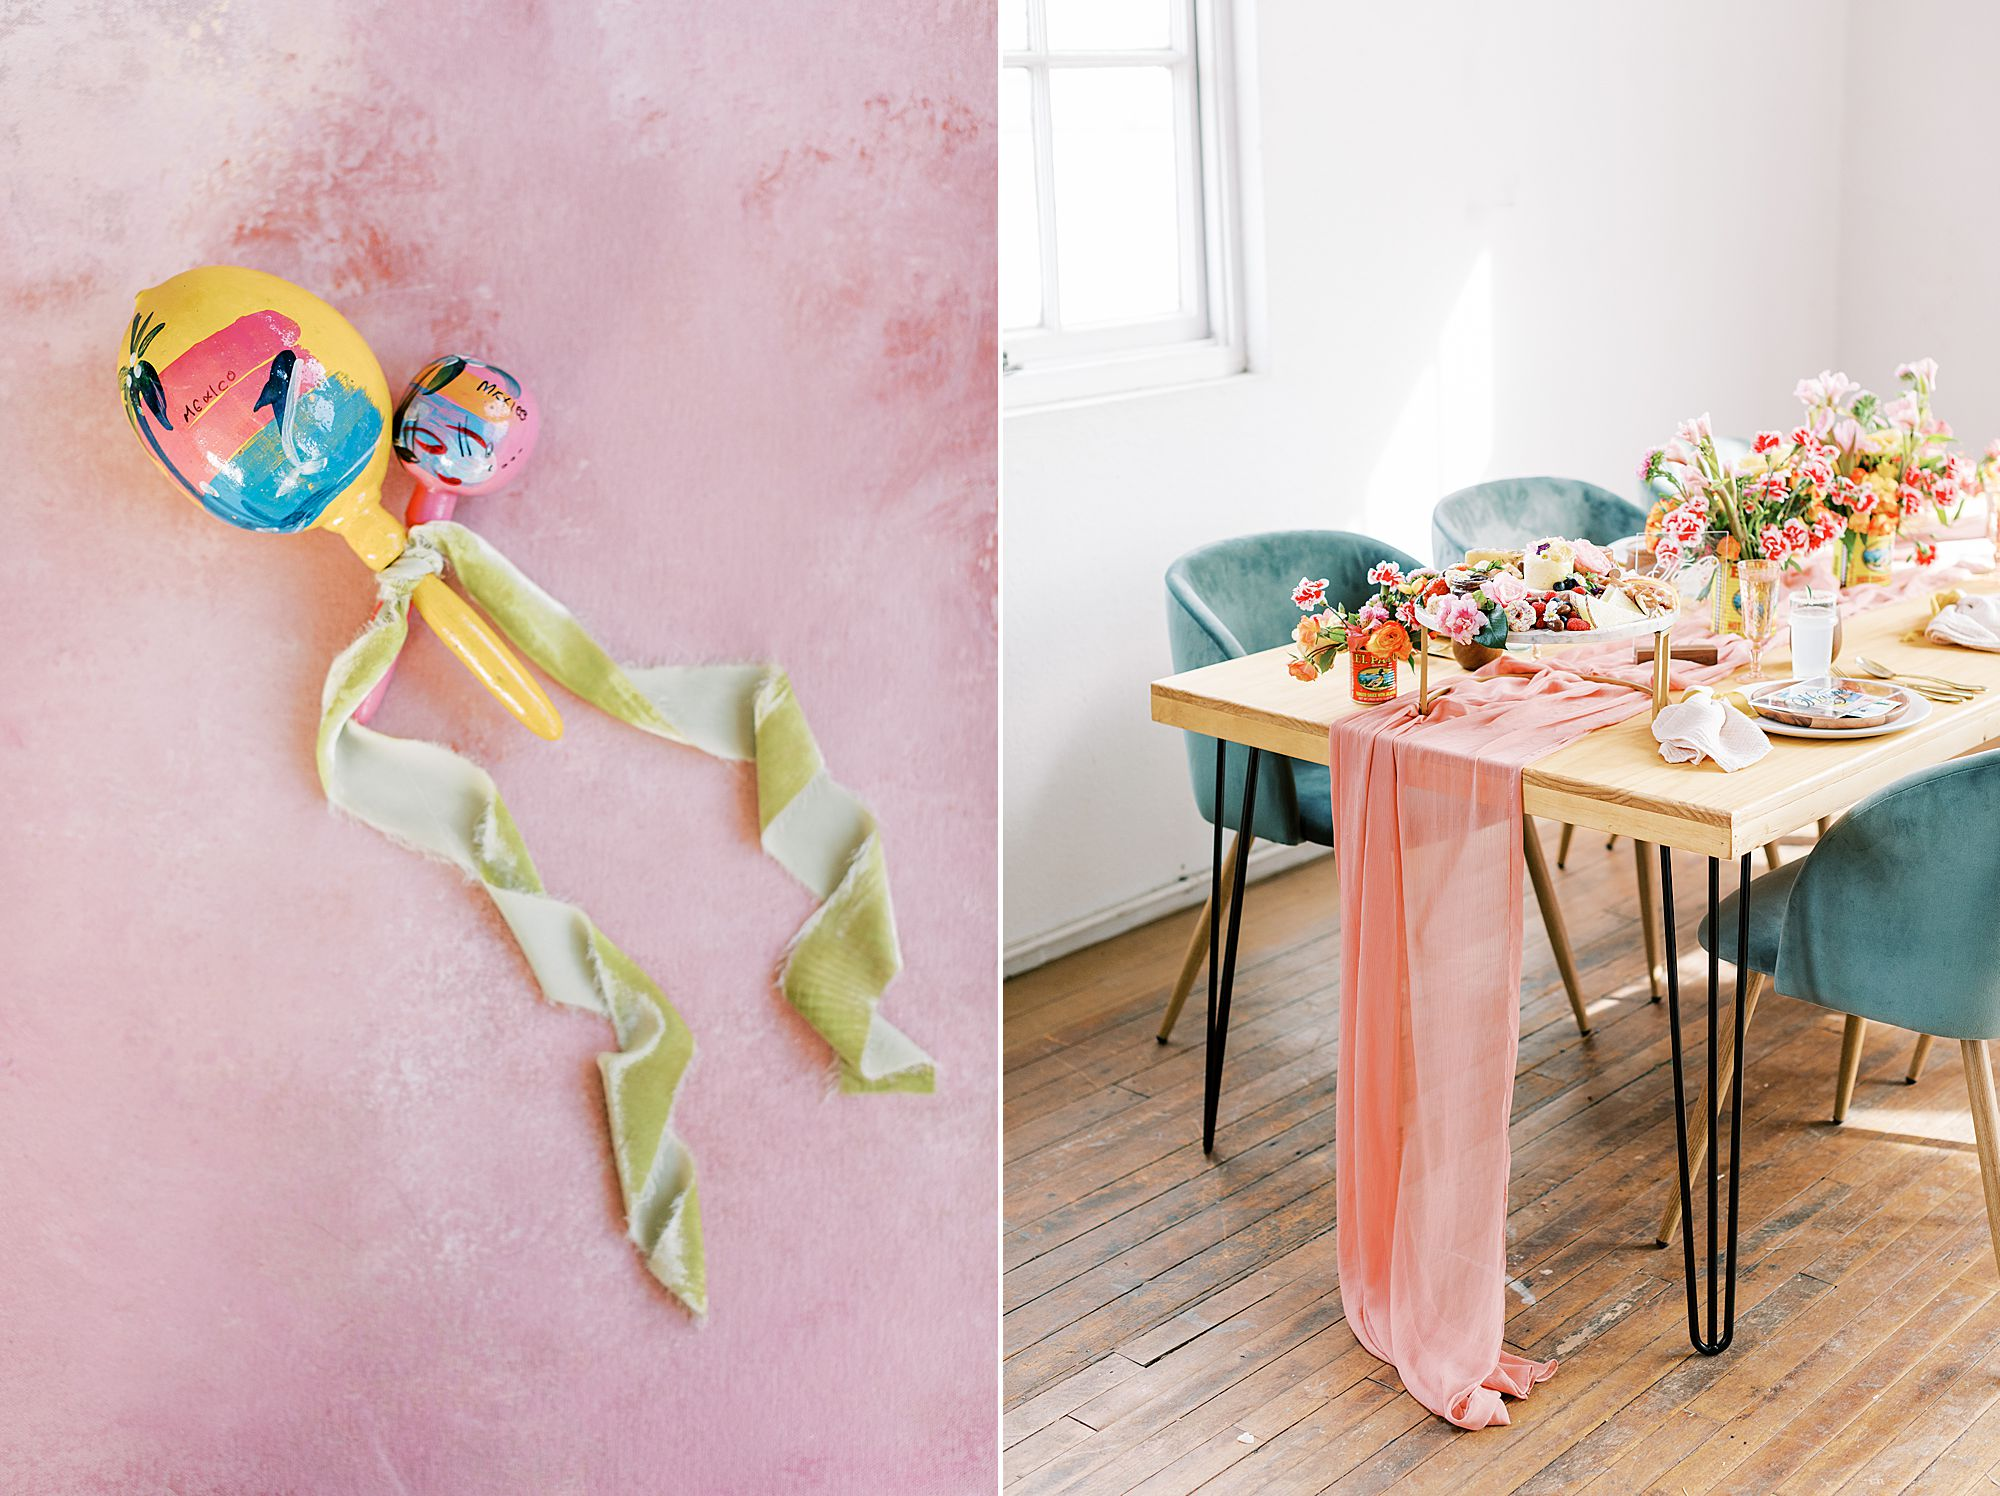 Cinco De Mayo Inspiration for Your FIesta - Party Crush Studio and Ashley Baumgartner_0042.jpg